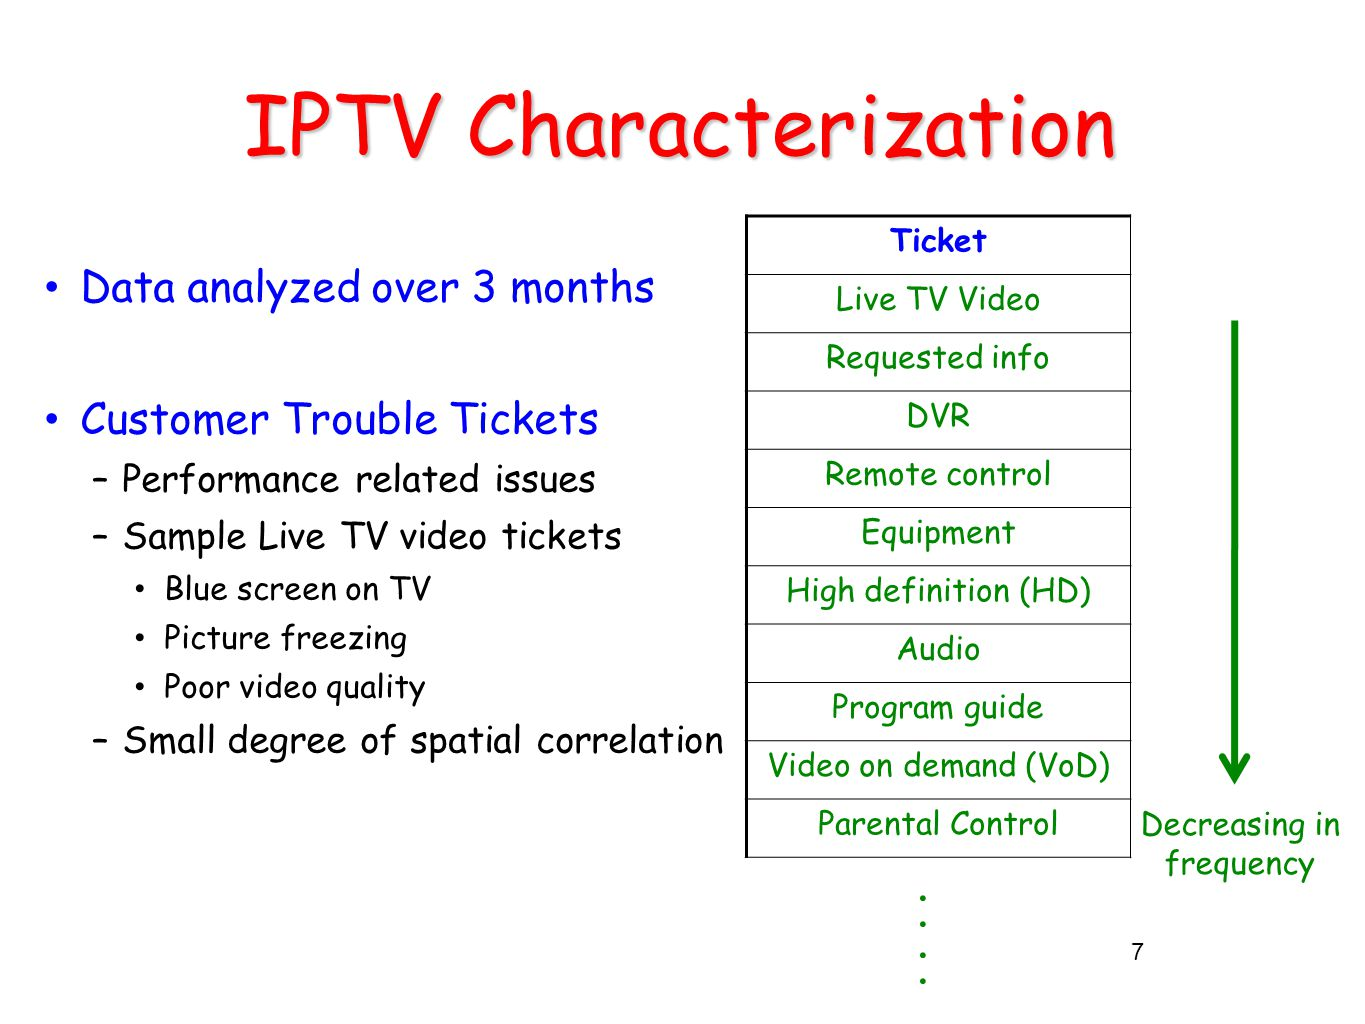 IPTV Characterization Data analyzed over 3 months Customer Trouble Tickets –Performance related issues –Sample Live TV video tickets Blue screen on TV Picture freezing Poor video quality –Small degree of spatial correlation 7 Ticket Live TV Video Requested info DVR Remote control Equipment High definition (HD) Audio Program guide Video on demand (VoD) Parental Control Decreasing in frequency........